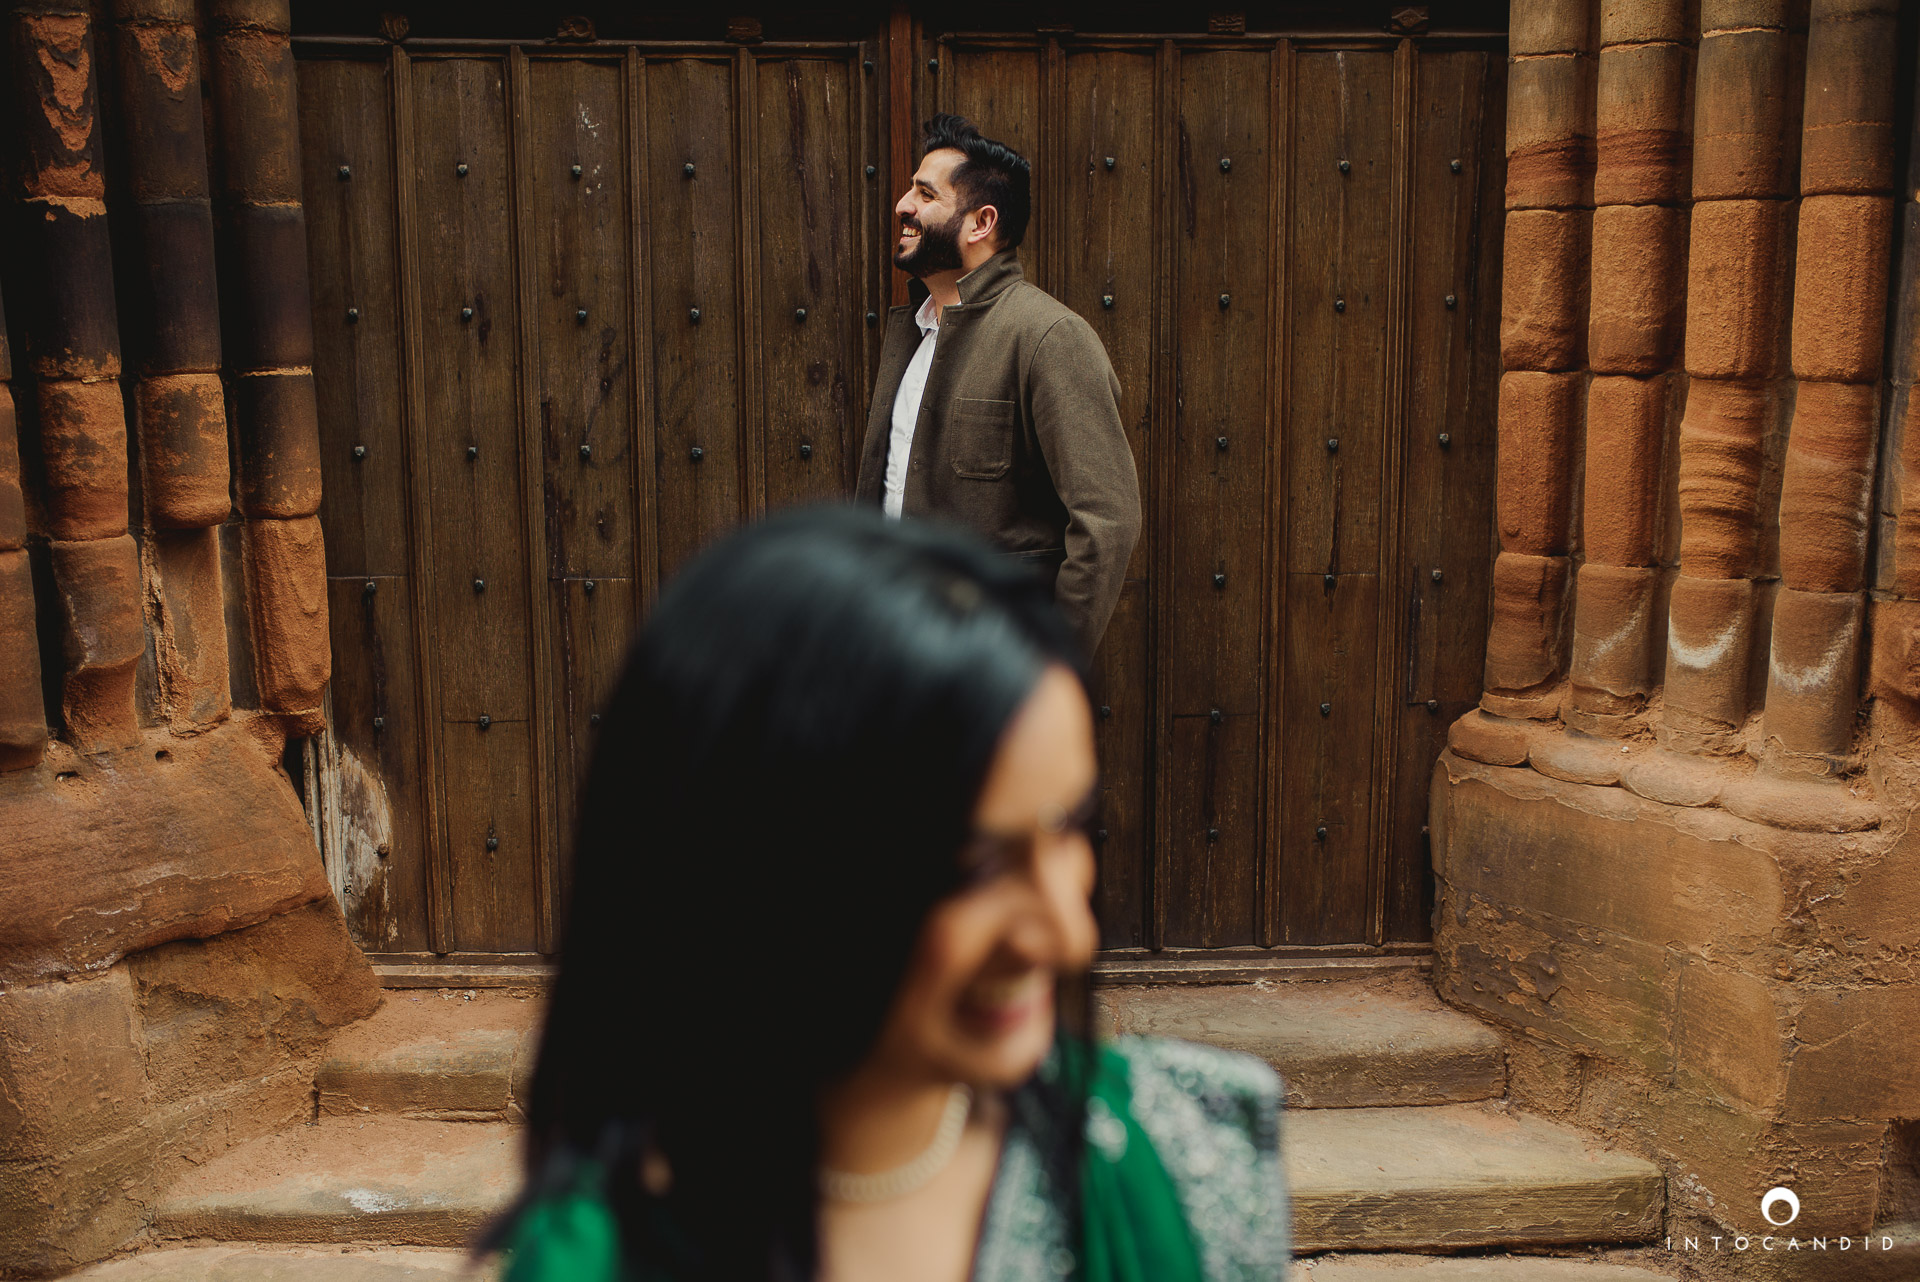 London_prewedding_Photographer_Intocandid_Photography_Ketan & Manasvi_05.JPG